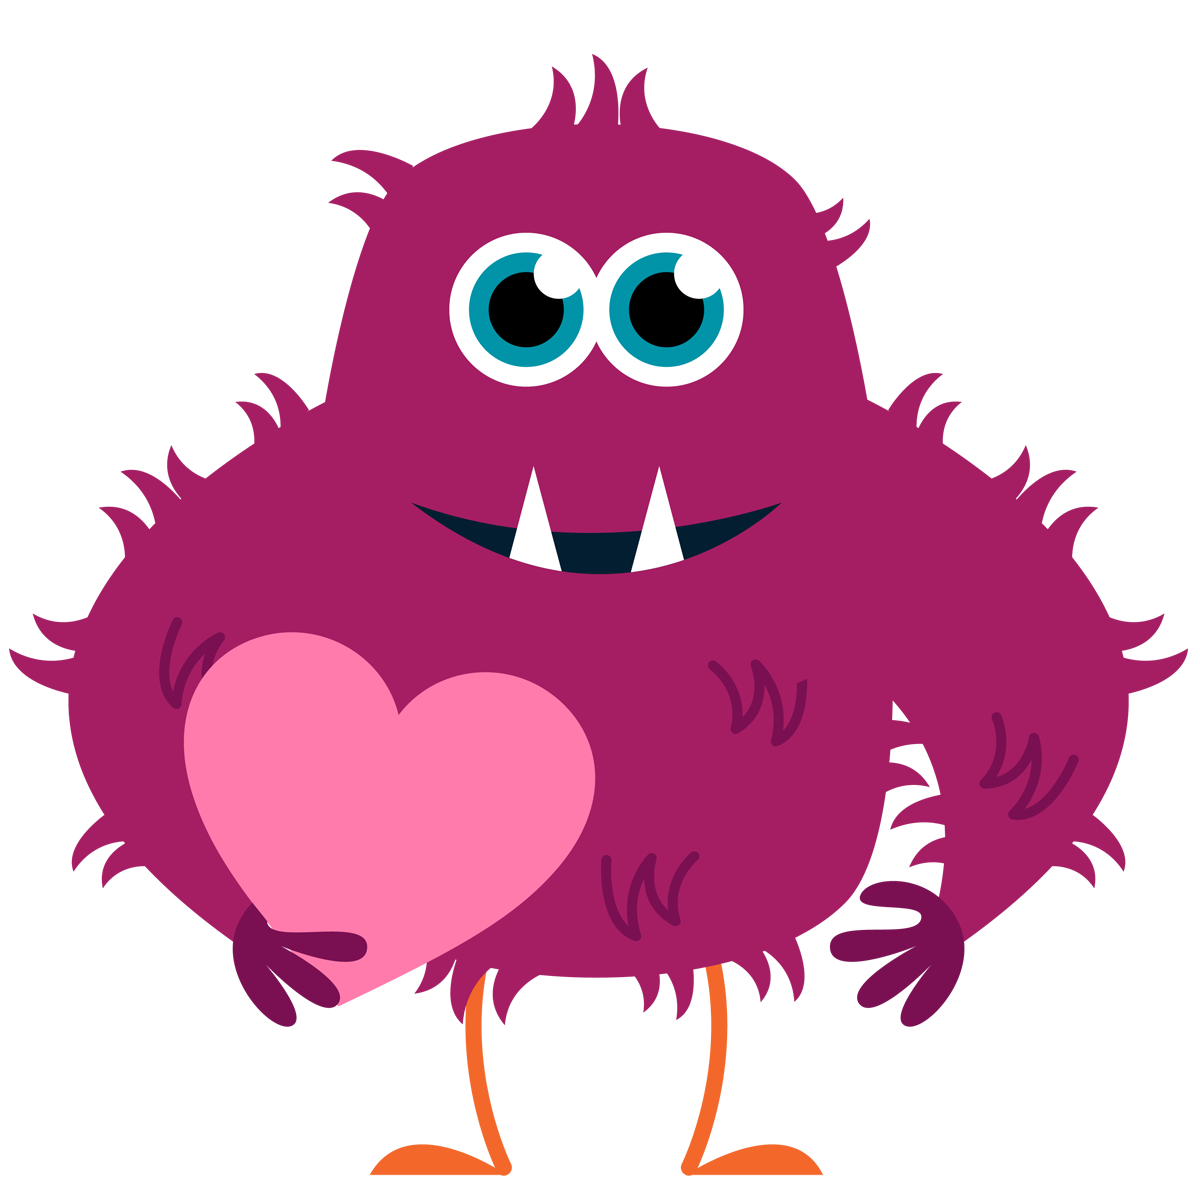 clipart happy valentine's day